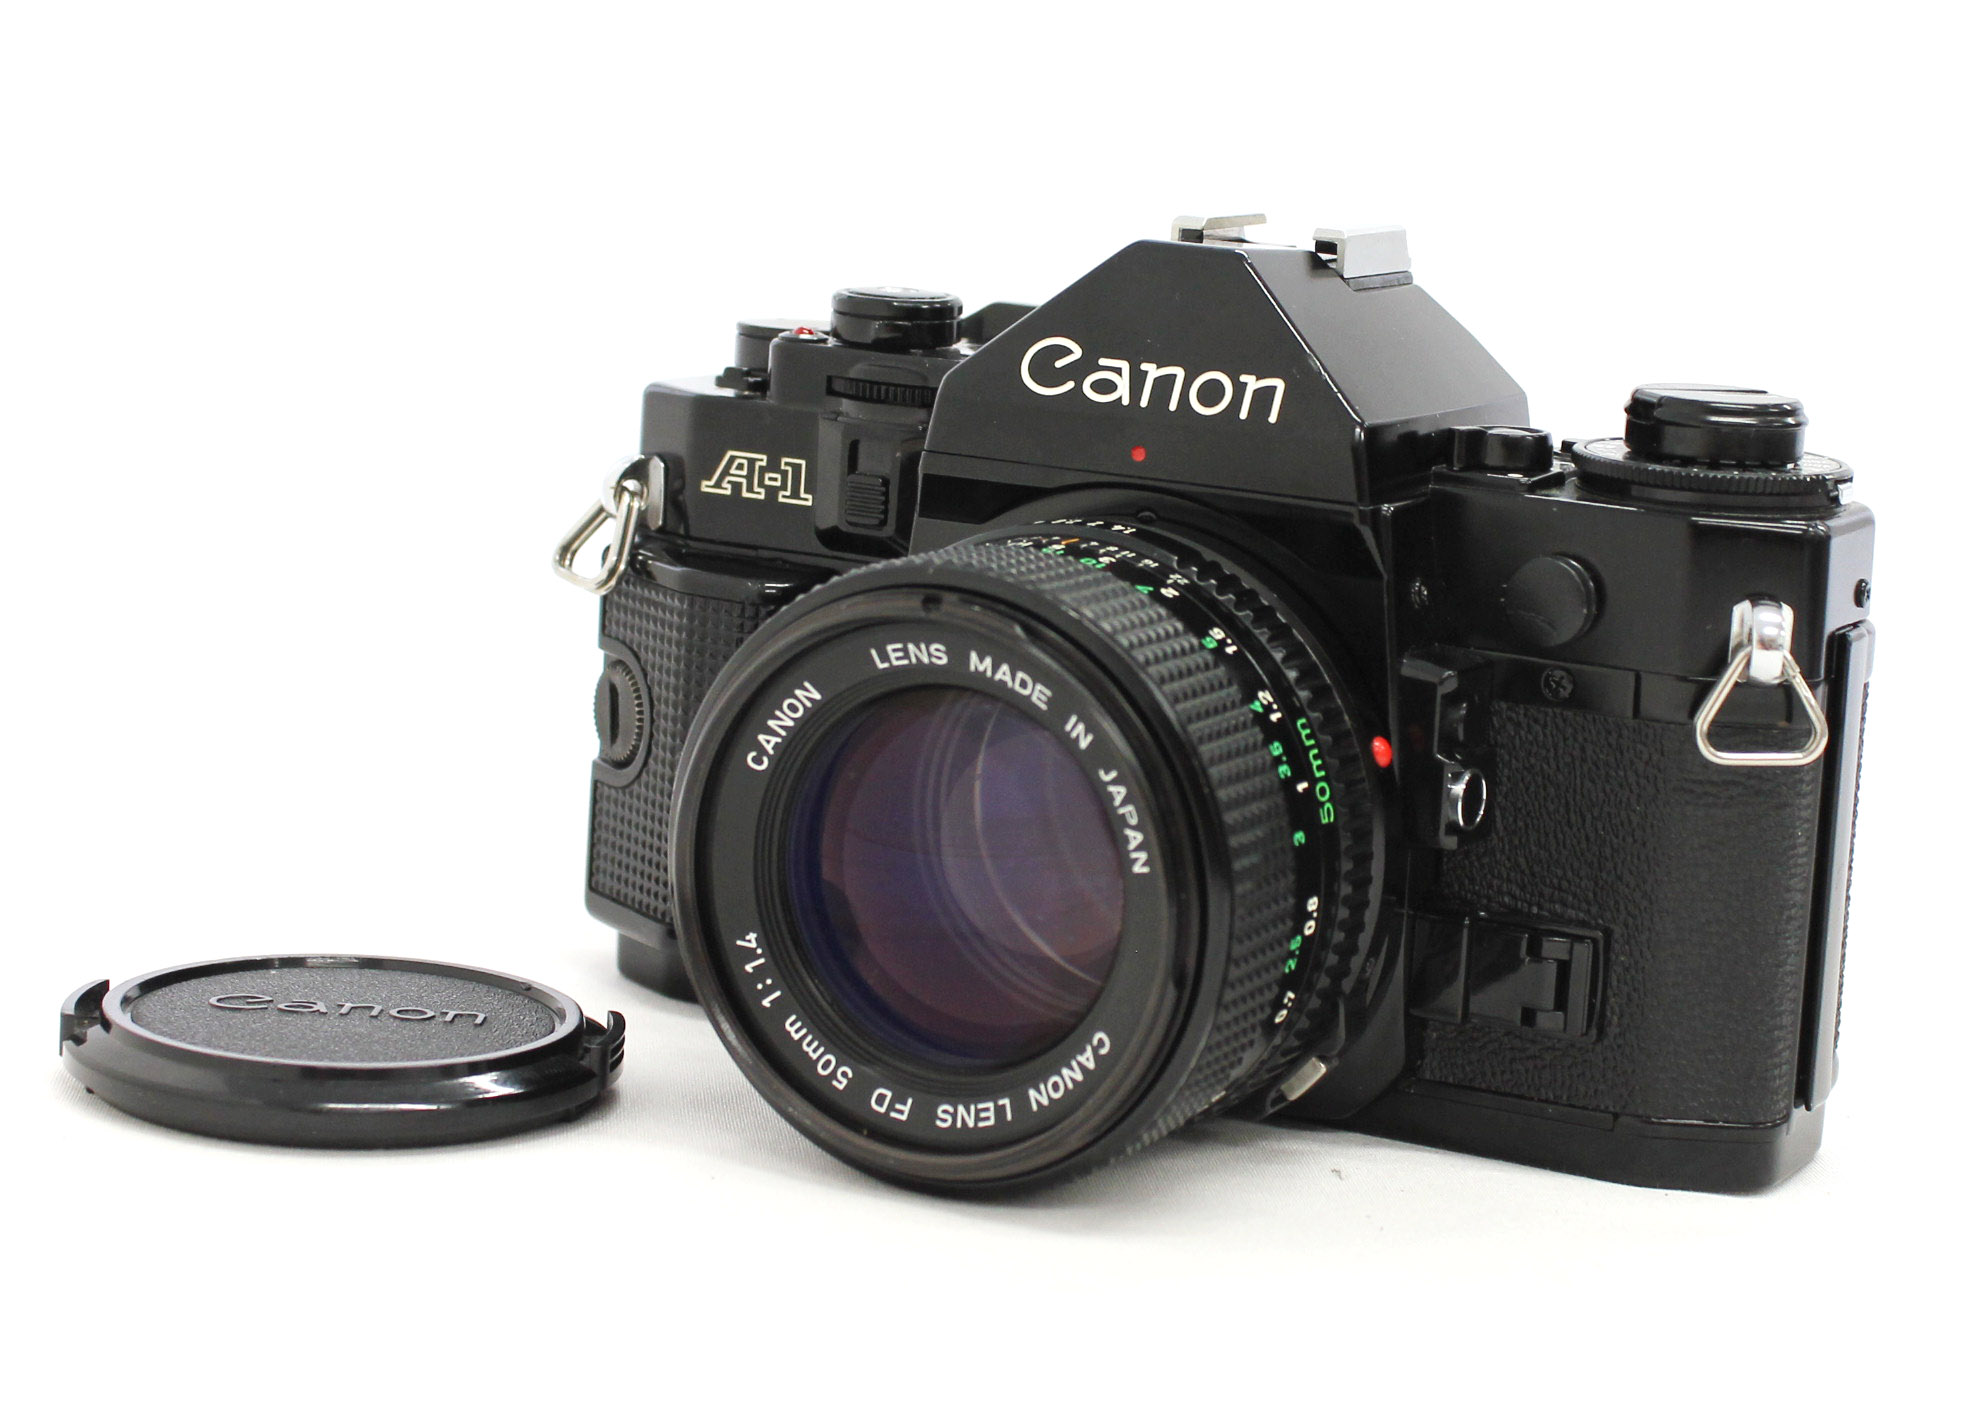 Canon A-1 35mm SLR Film Camera with New FD NFD 50mm F/1.4 Lens from Japan